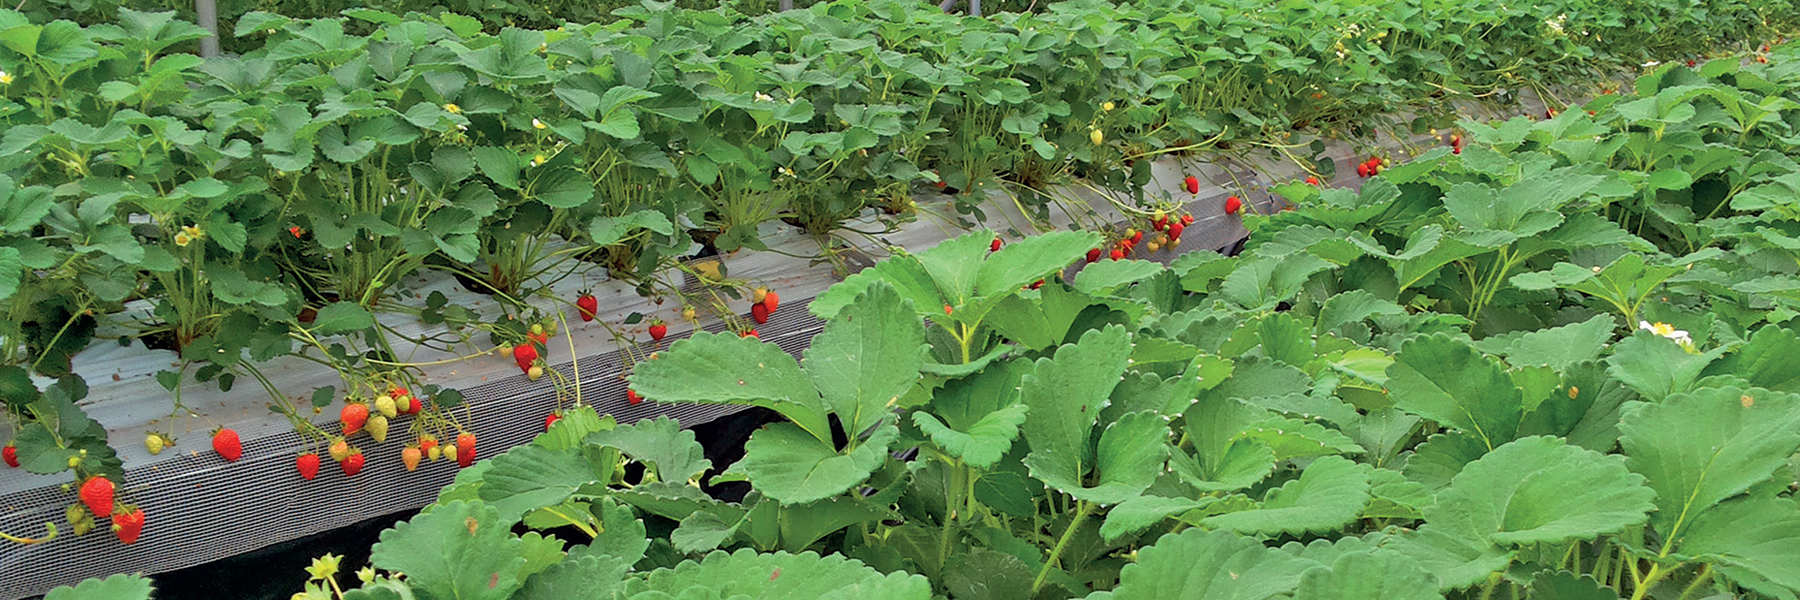 AlgaFlex increases productivity in strawberry cropping